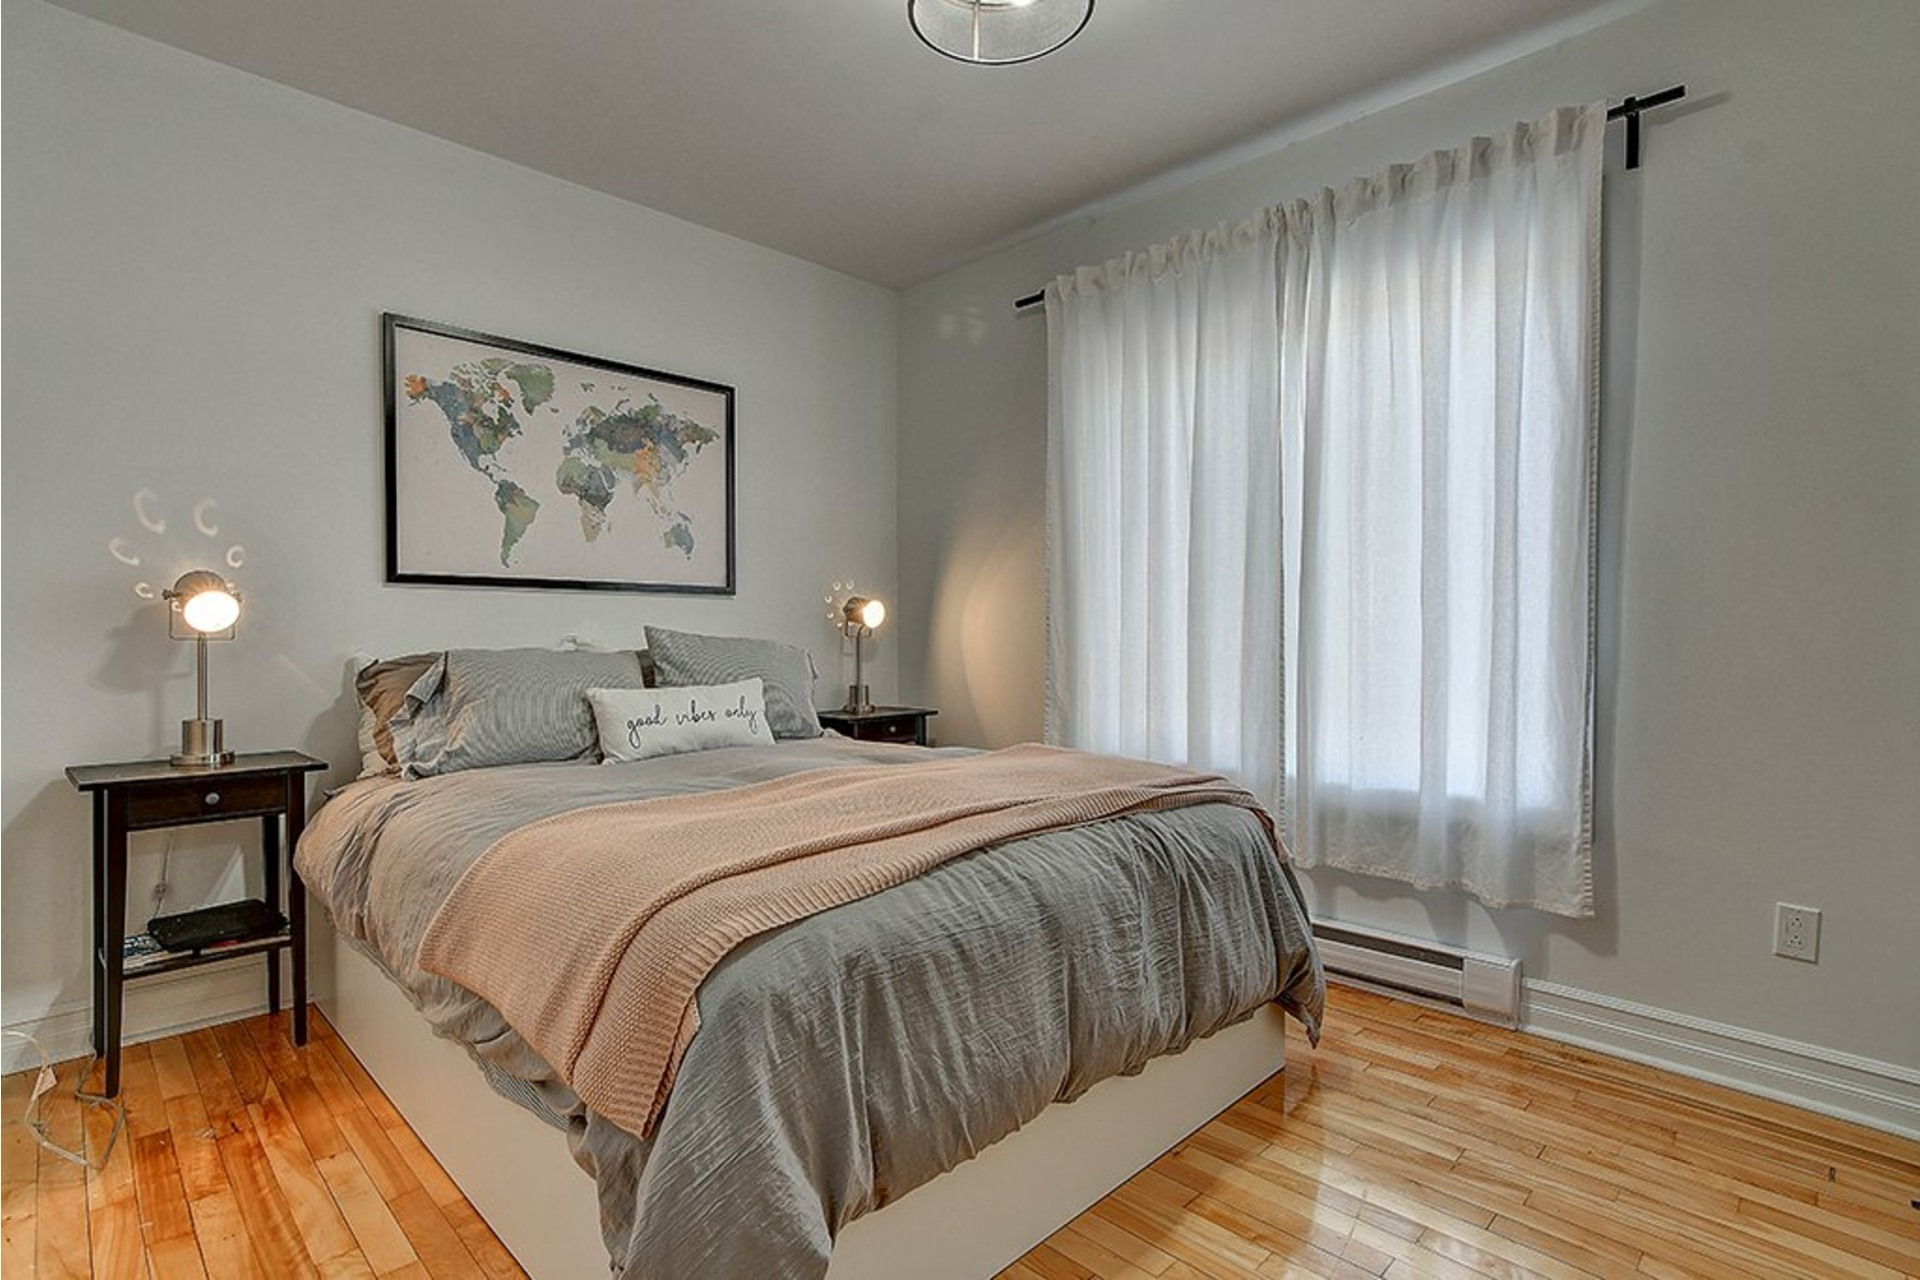 image 9 - Income property For sale Le Sud-Ouest Montréal  - 4 rooms